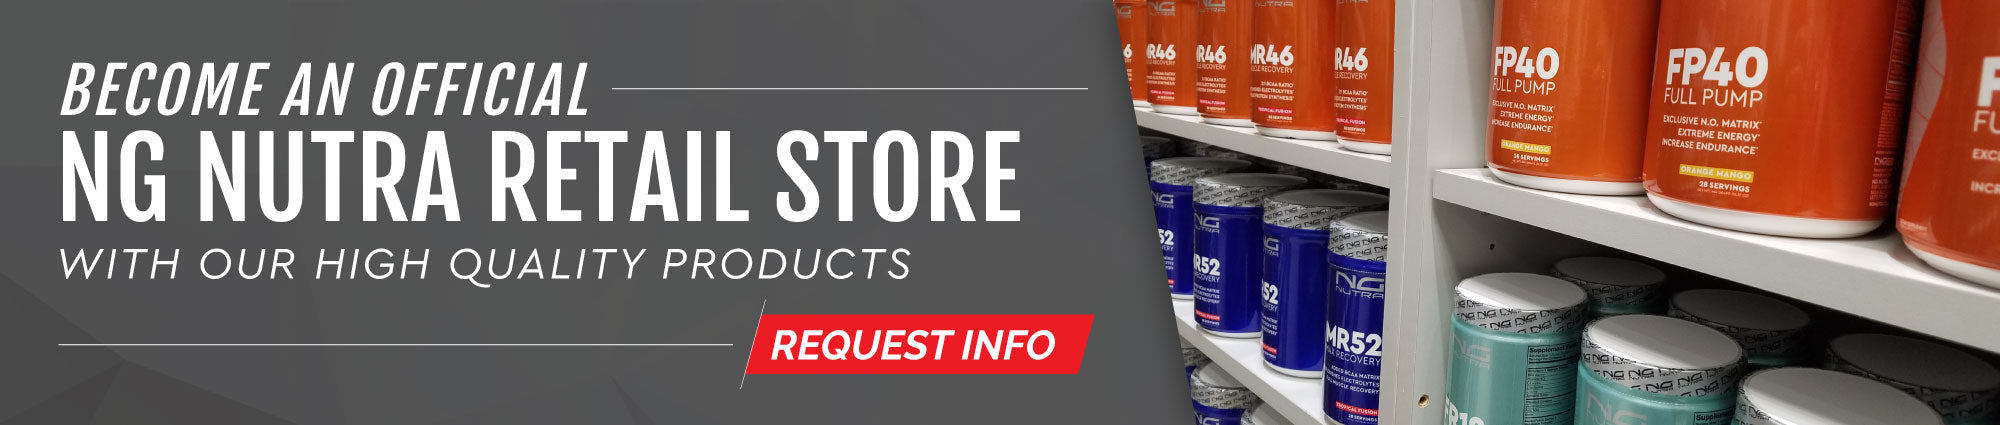 Become an official NG Nutra retail store with our hight quality products. Request info.